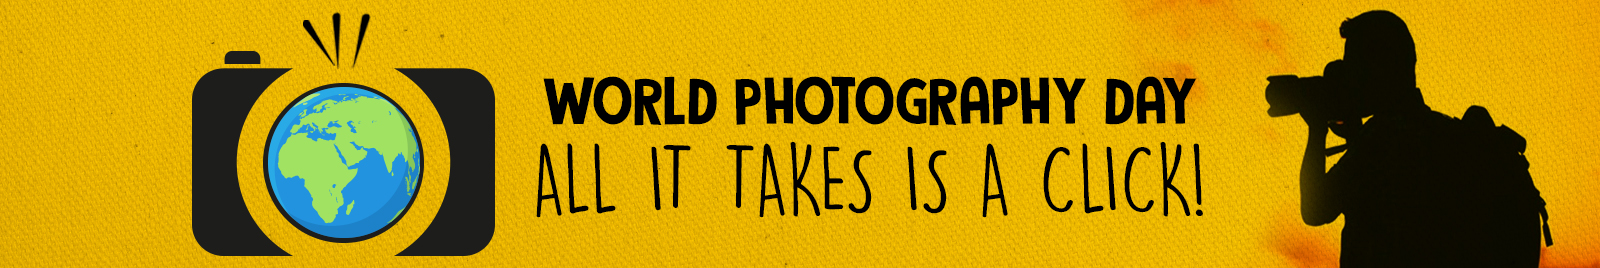 World Photography Day: All it takes is a click!